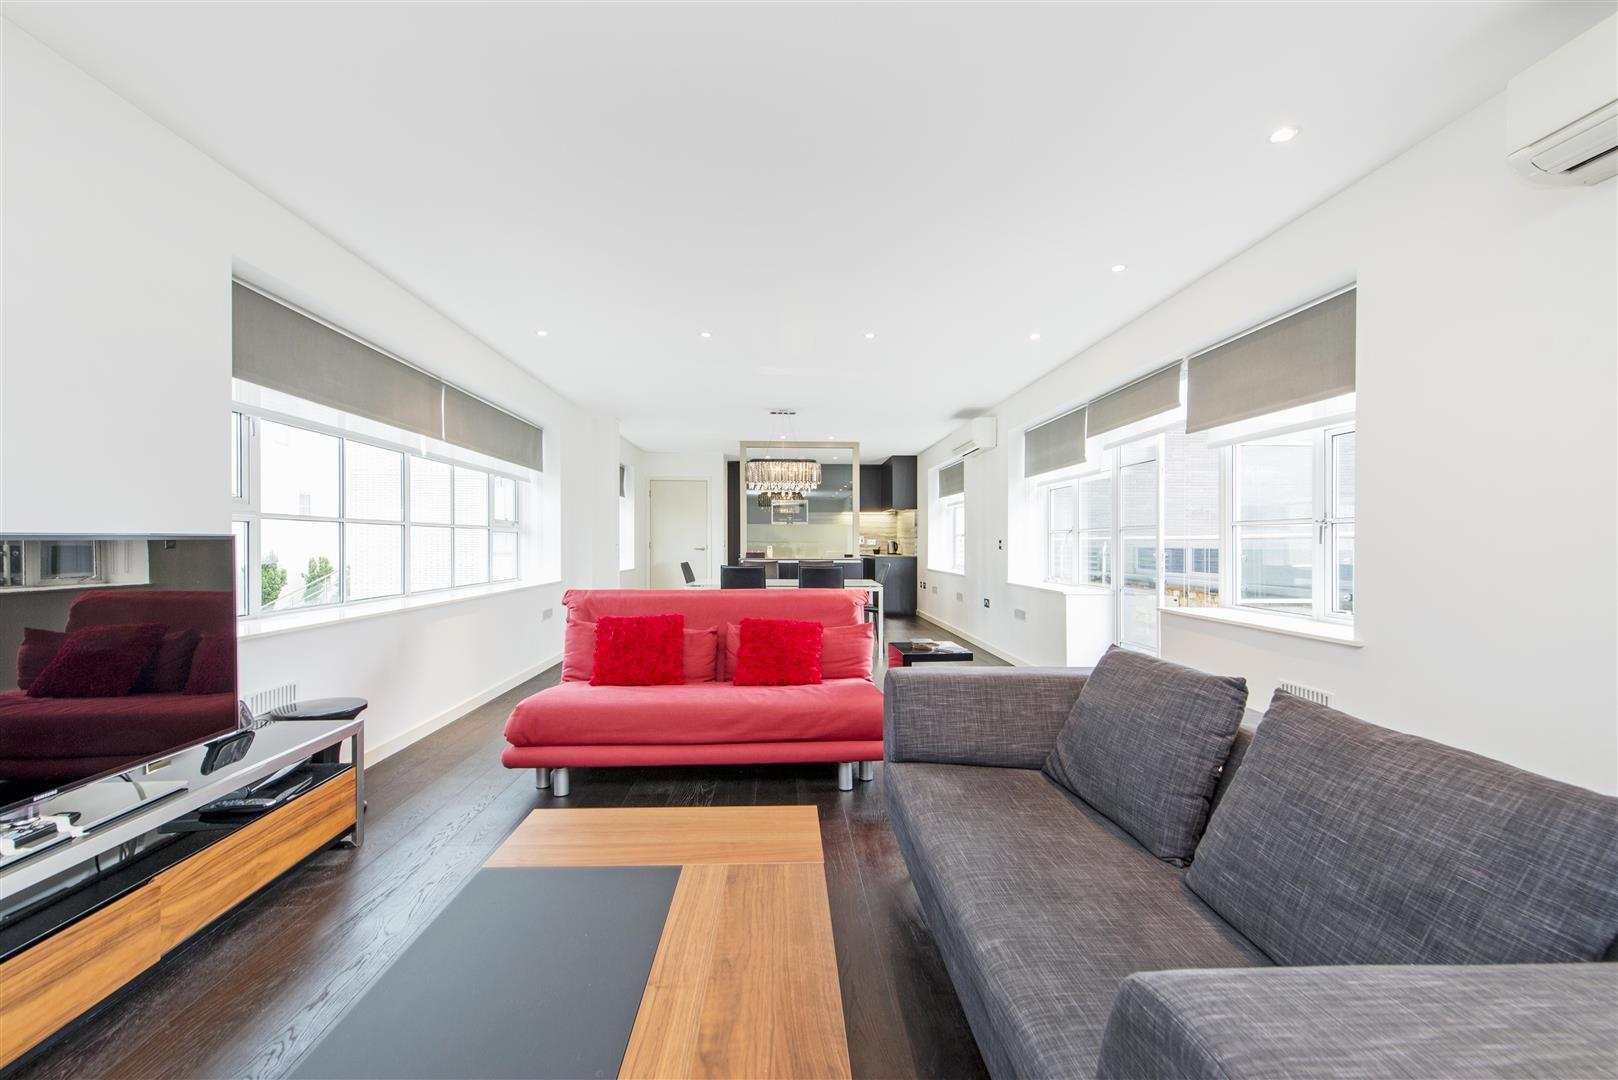 2 Bedrooms Flat for rent in The Regent Loft, 14 Marshall Street, Westminster, London, W1F